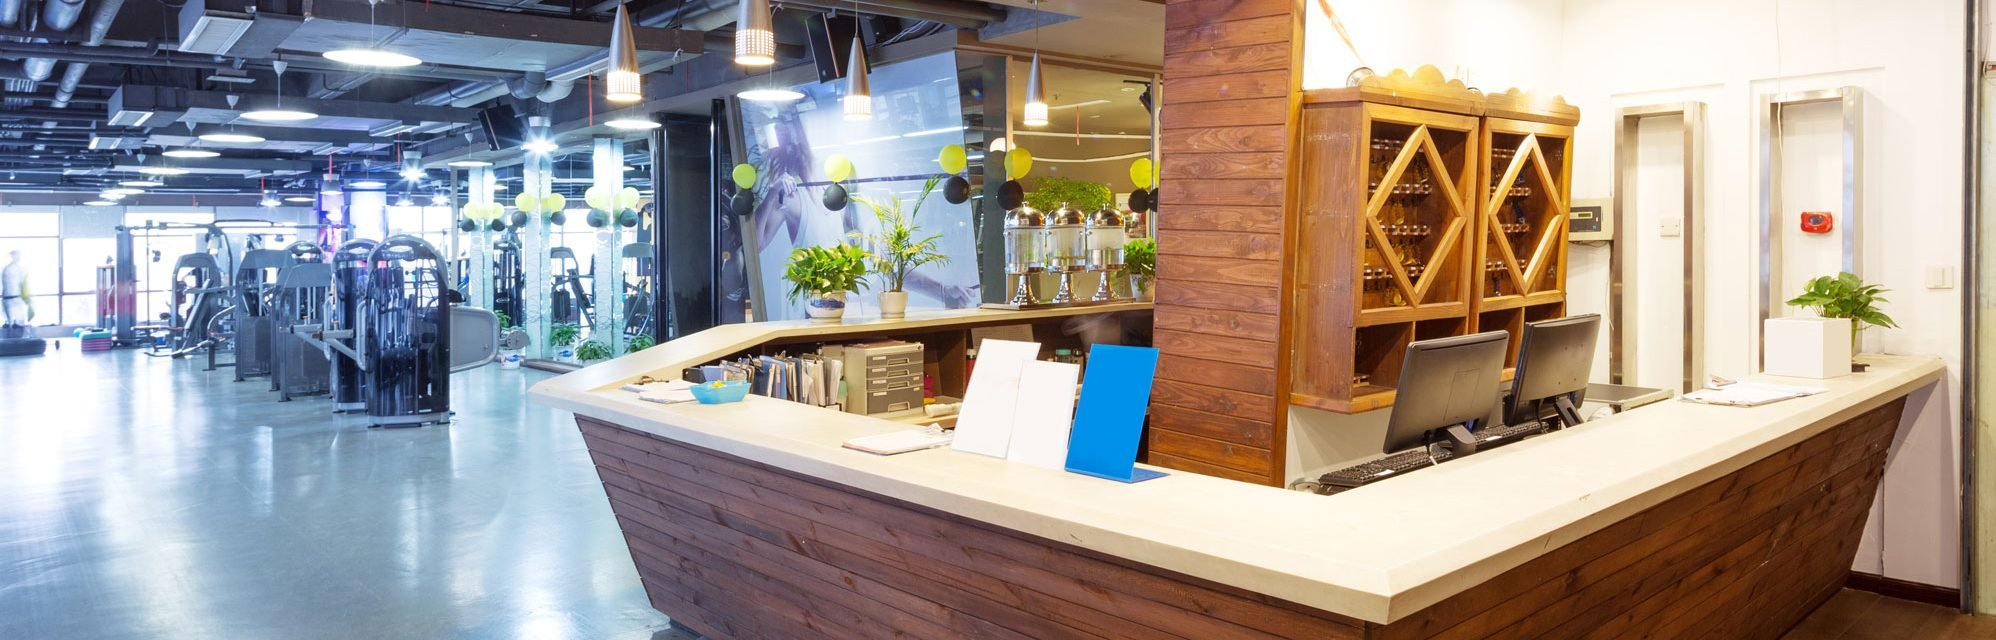 a front desk at a concept designed fitness facility